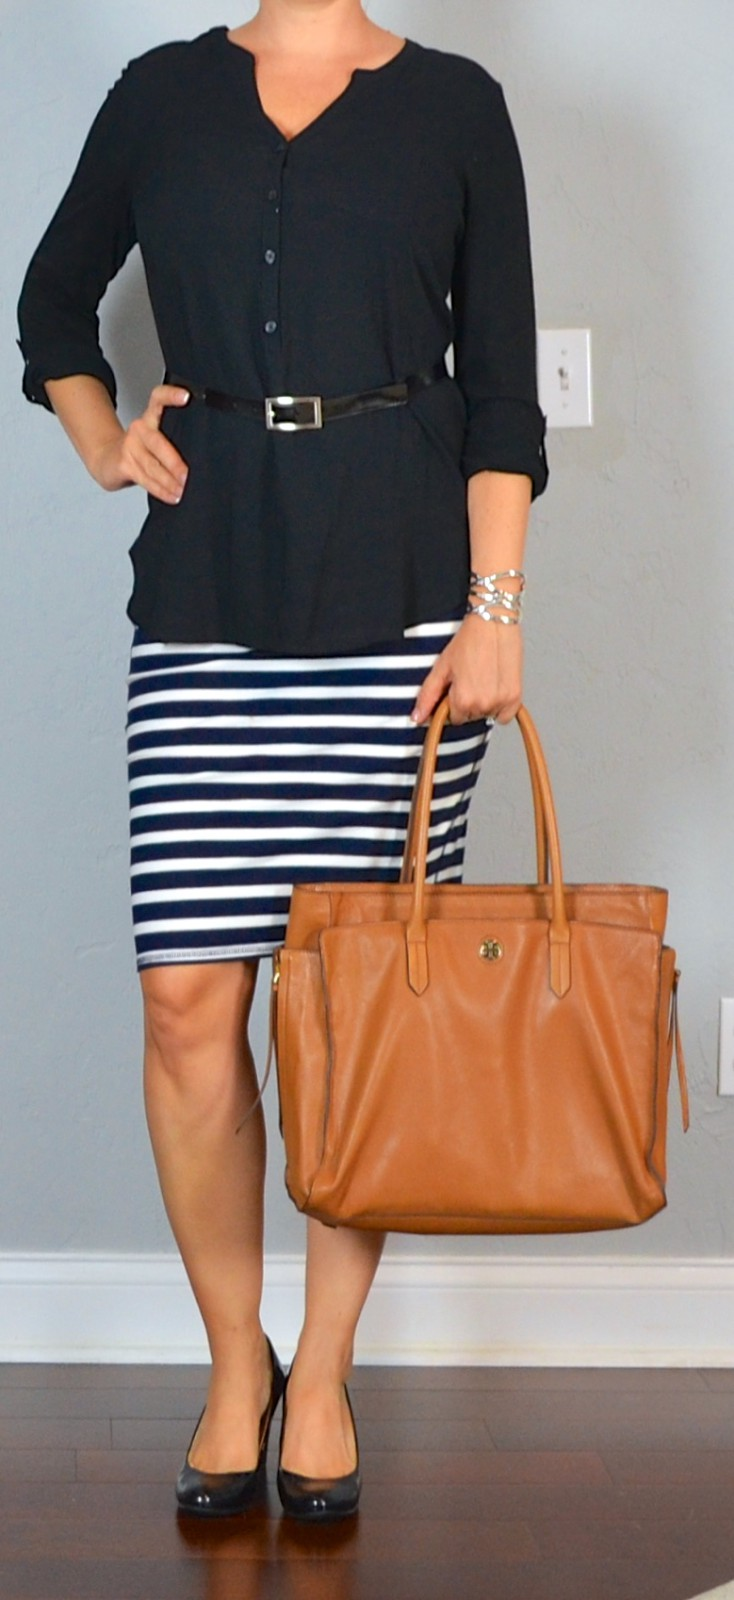 Orange and brown clothing ideas with business casual, pencil skirt, dress shirt, leather